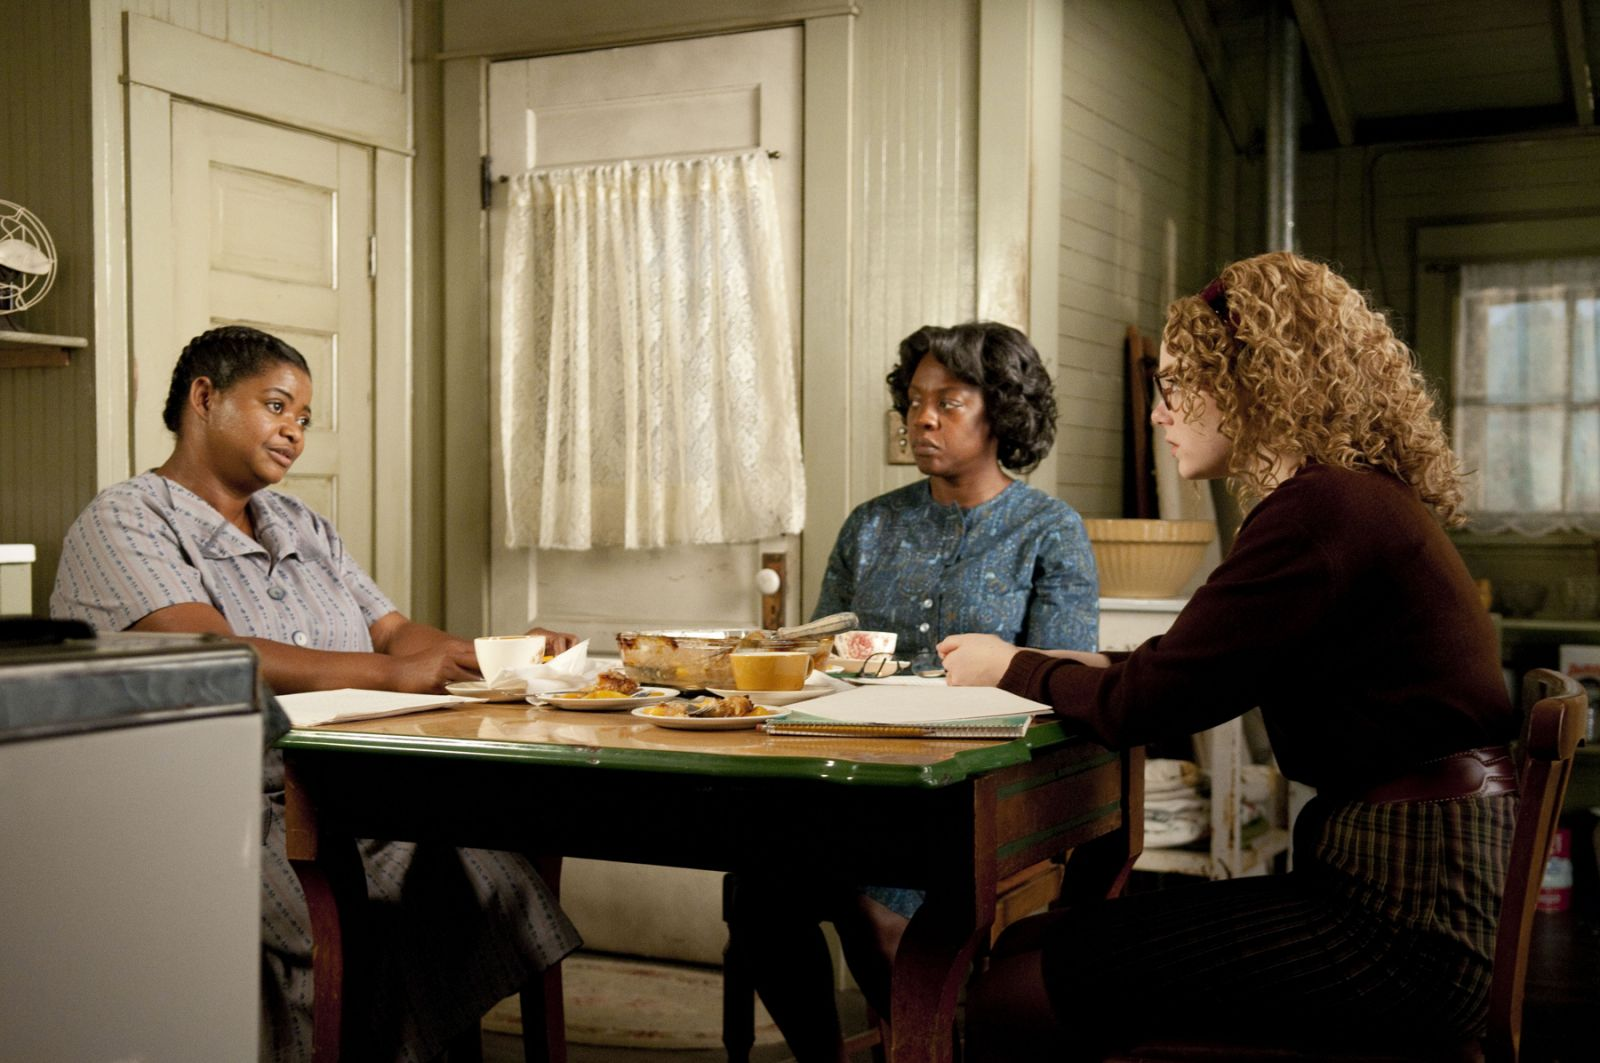 in-jackson-mississippi-in-1963-minny-jackson-octavia-spencer-left-aibileen-clark-academy-award-nominee-viola-davis-center-and-skeeter-phelan-emma-stone-right-form-an-improbable-alliance-resulting-in-a-remarkable-siste-15.jpg